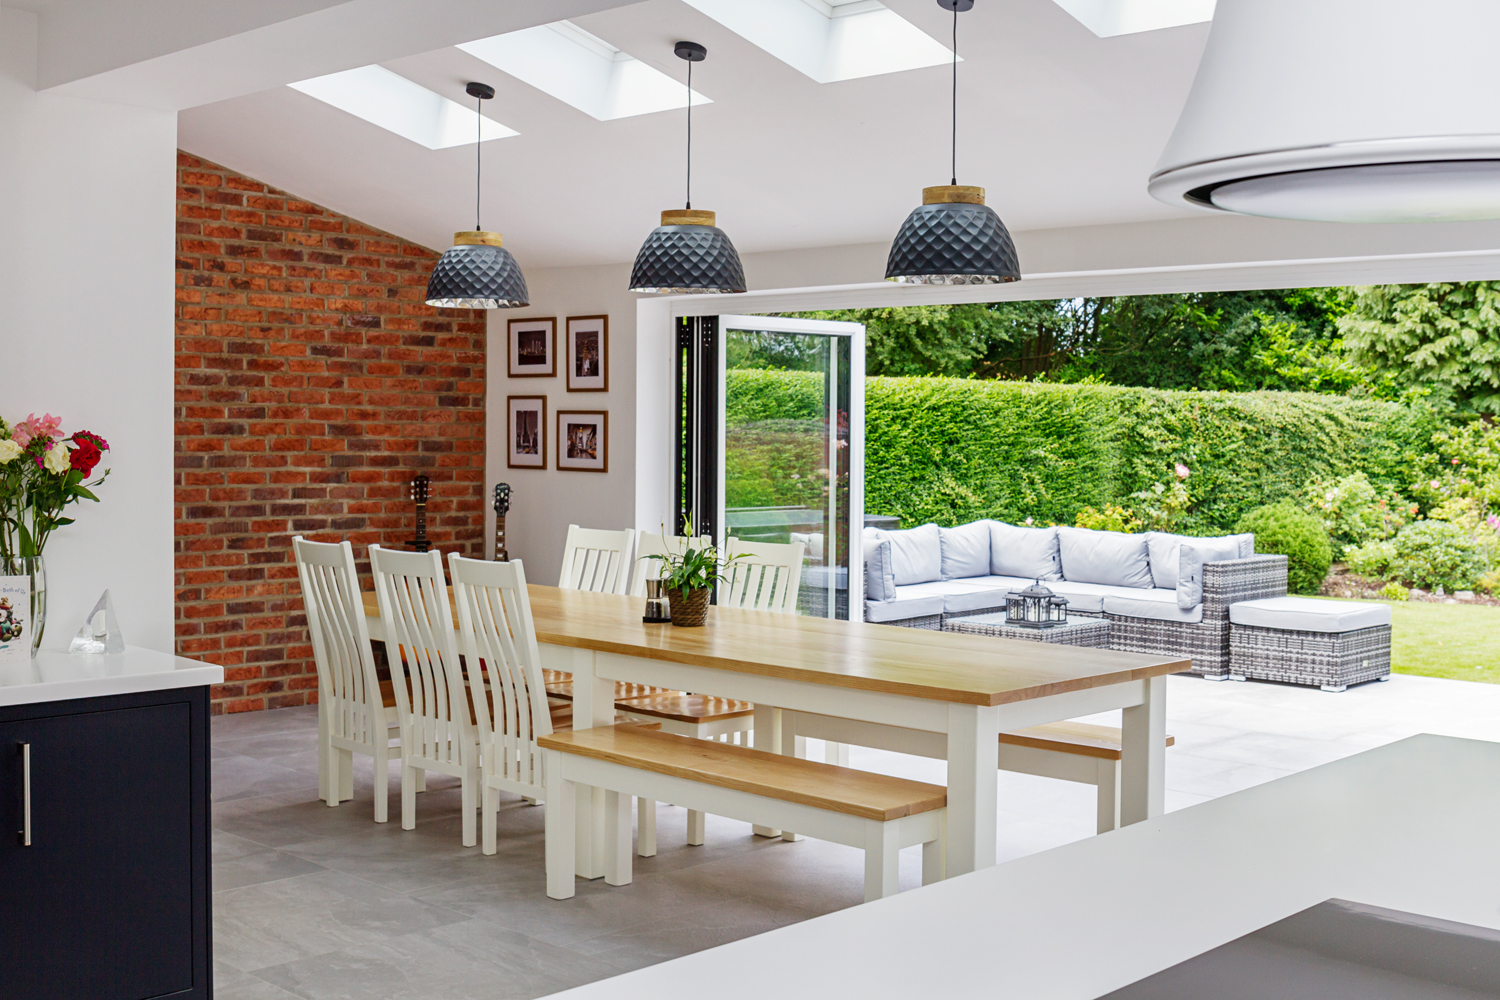 Extension & Renovation - Transforming A Dated Detached Into A Stylish & Unique Forever Home